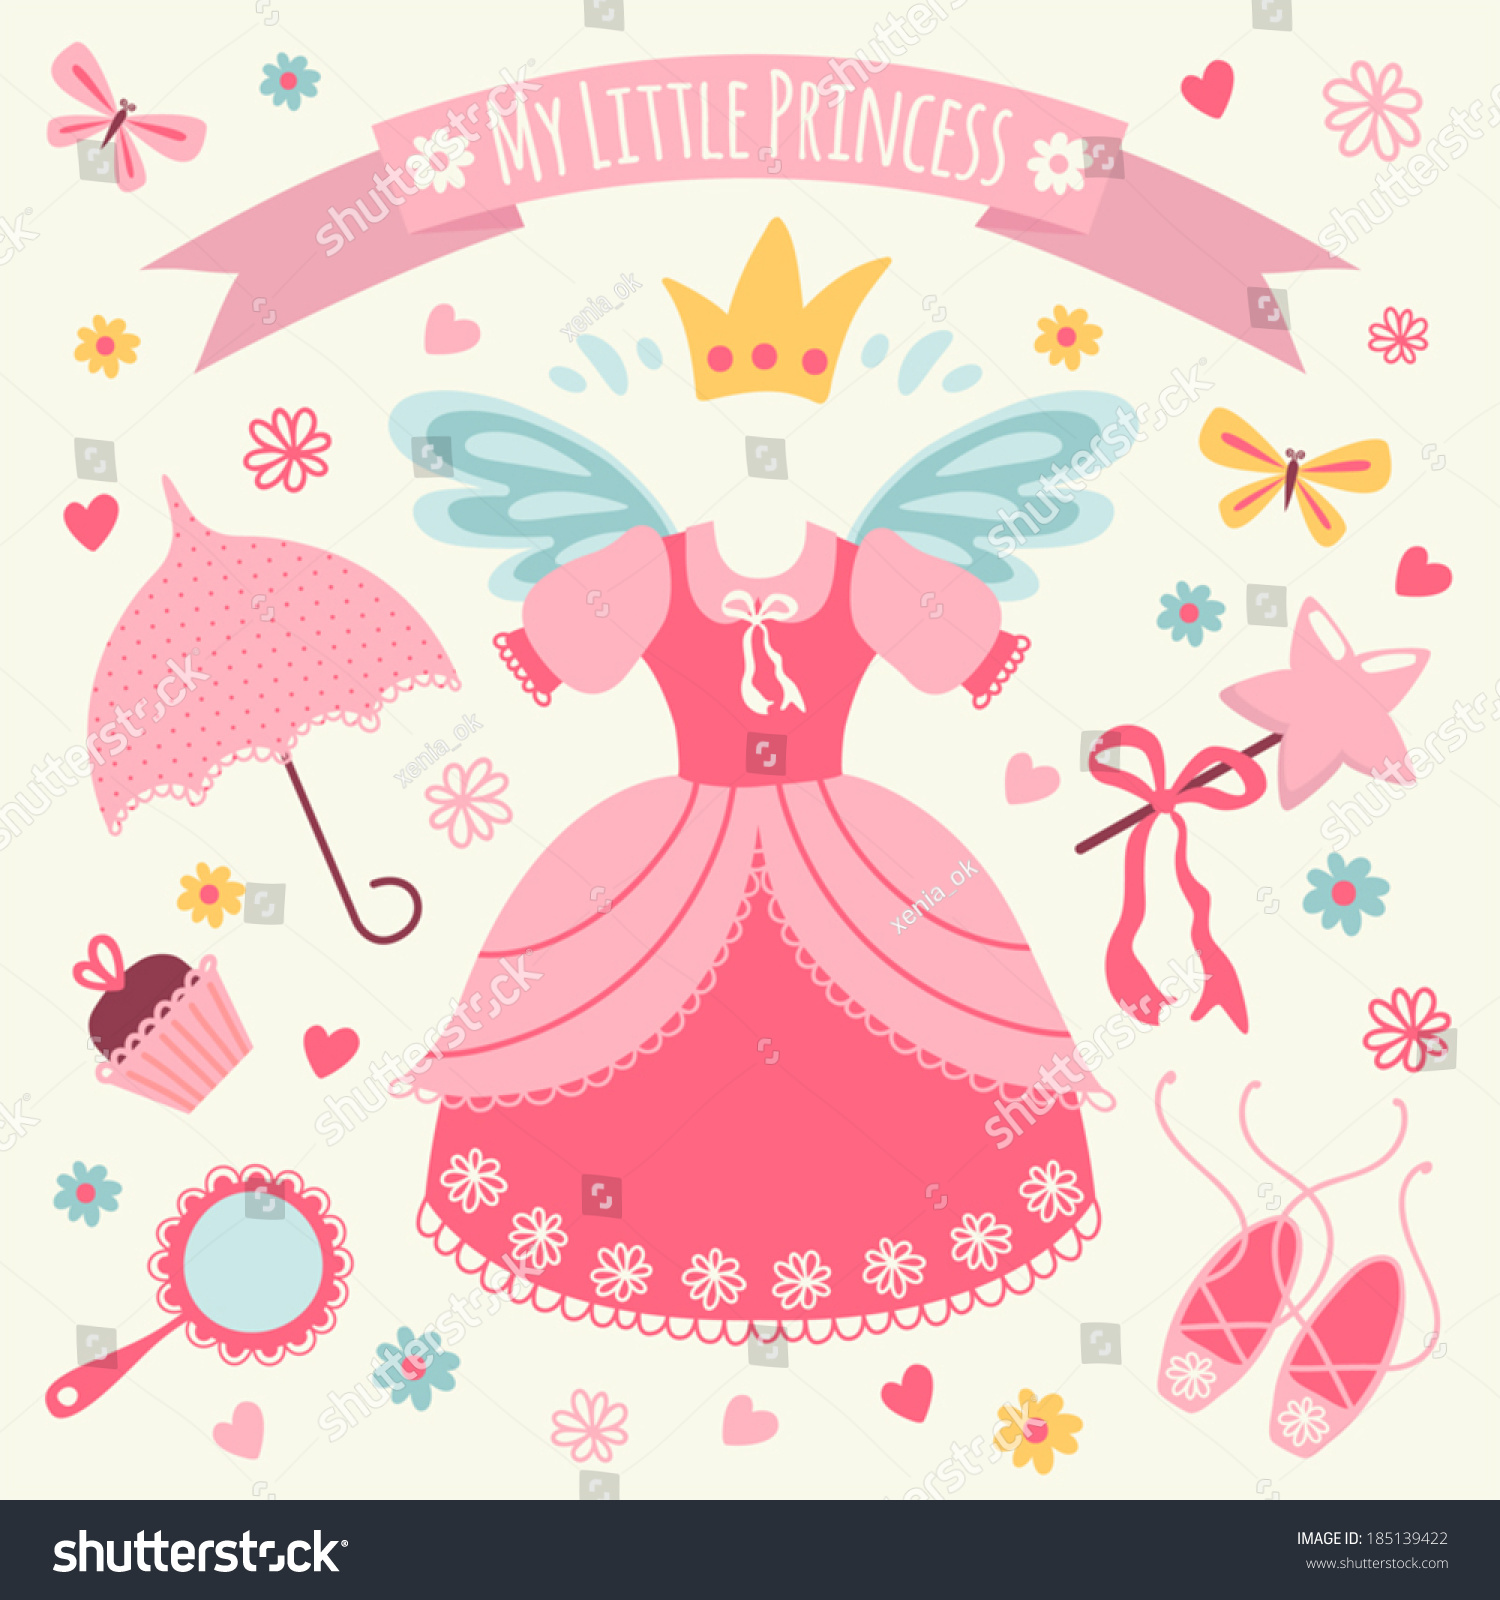 set accessories little princess template greeting stock vector set of accessories for little princess template greeting card or invitation